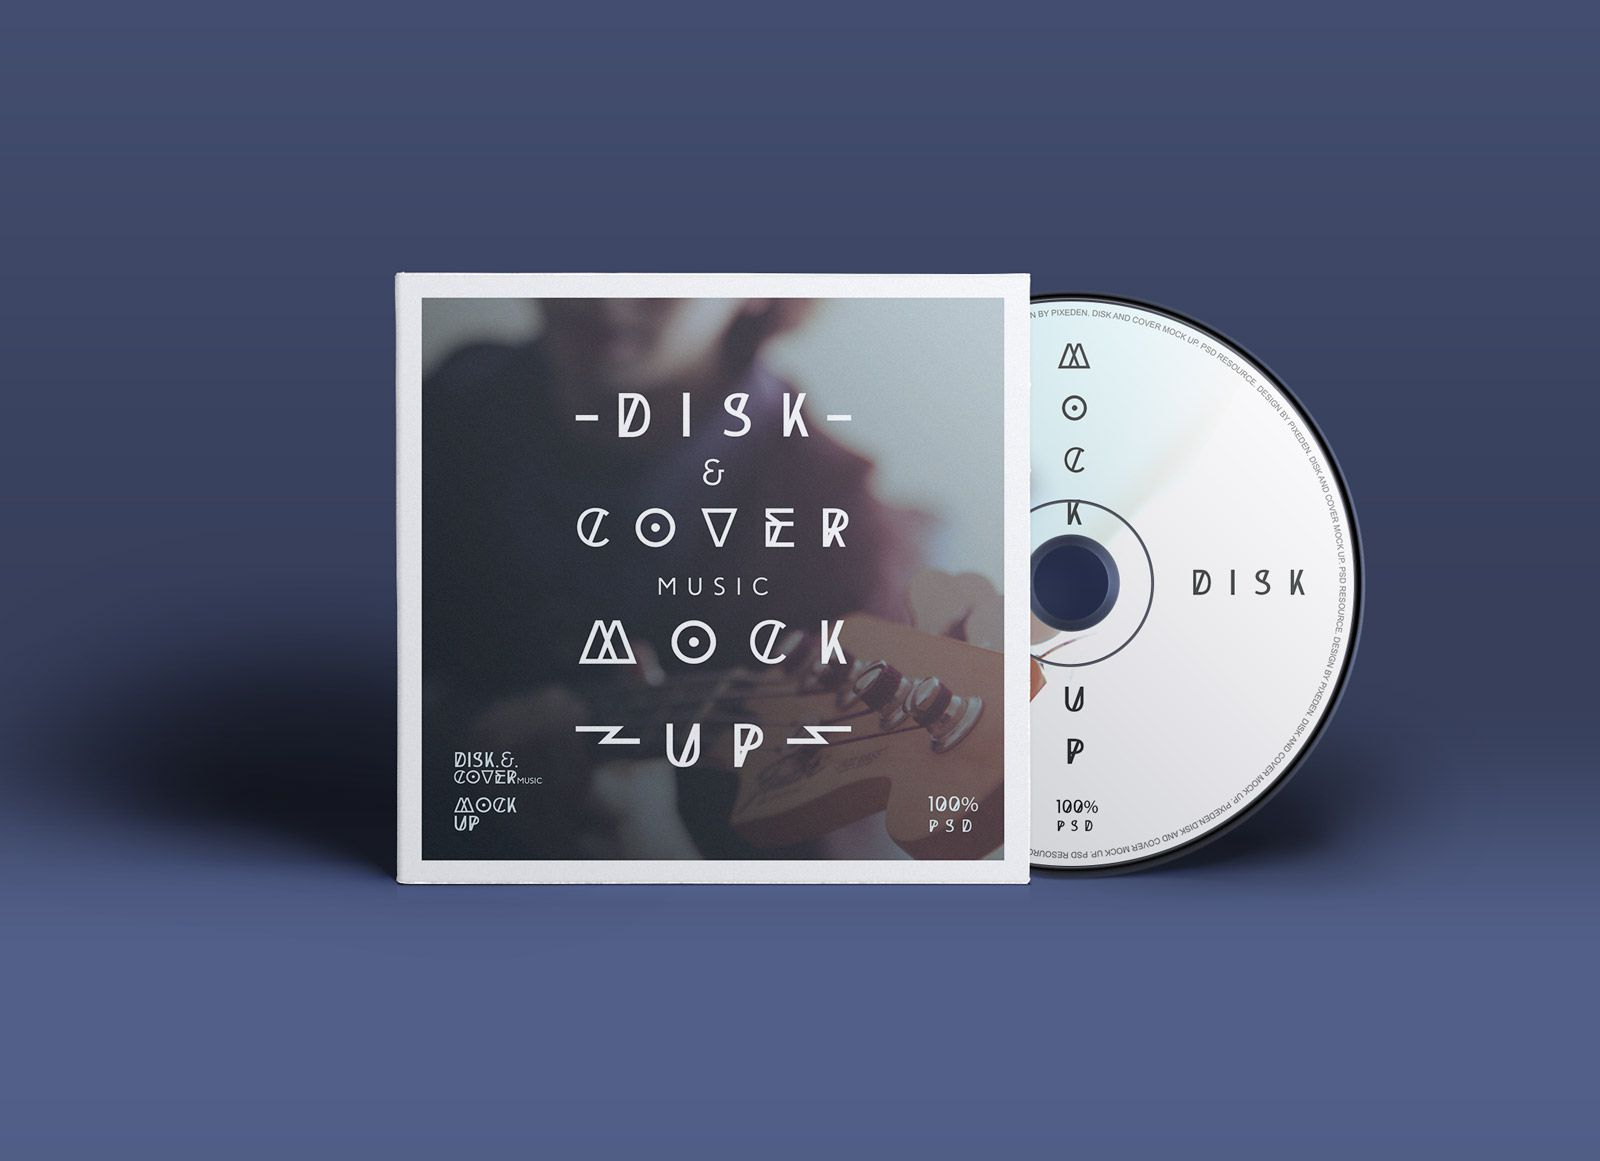 007 Marvelou Music Cd Cover Design Template Free Download High Def Full